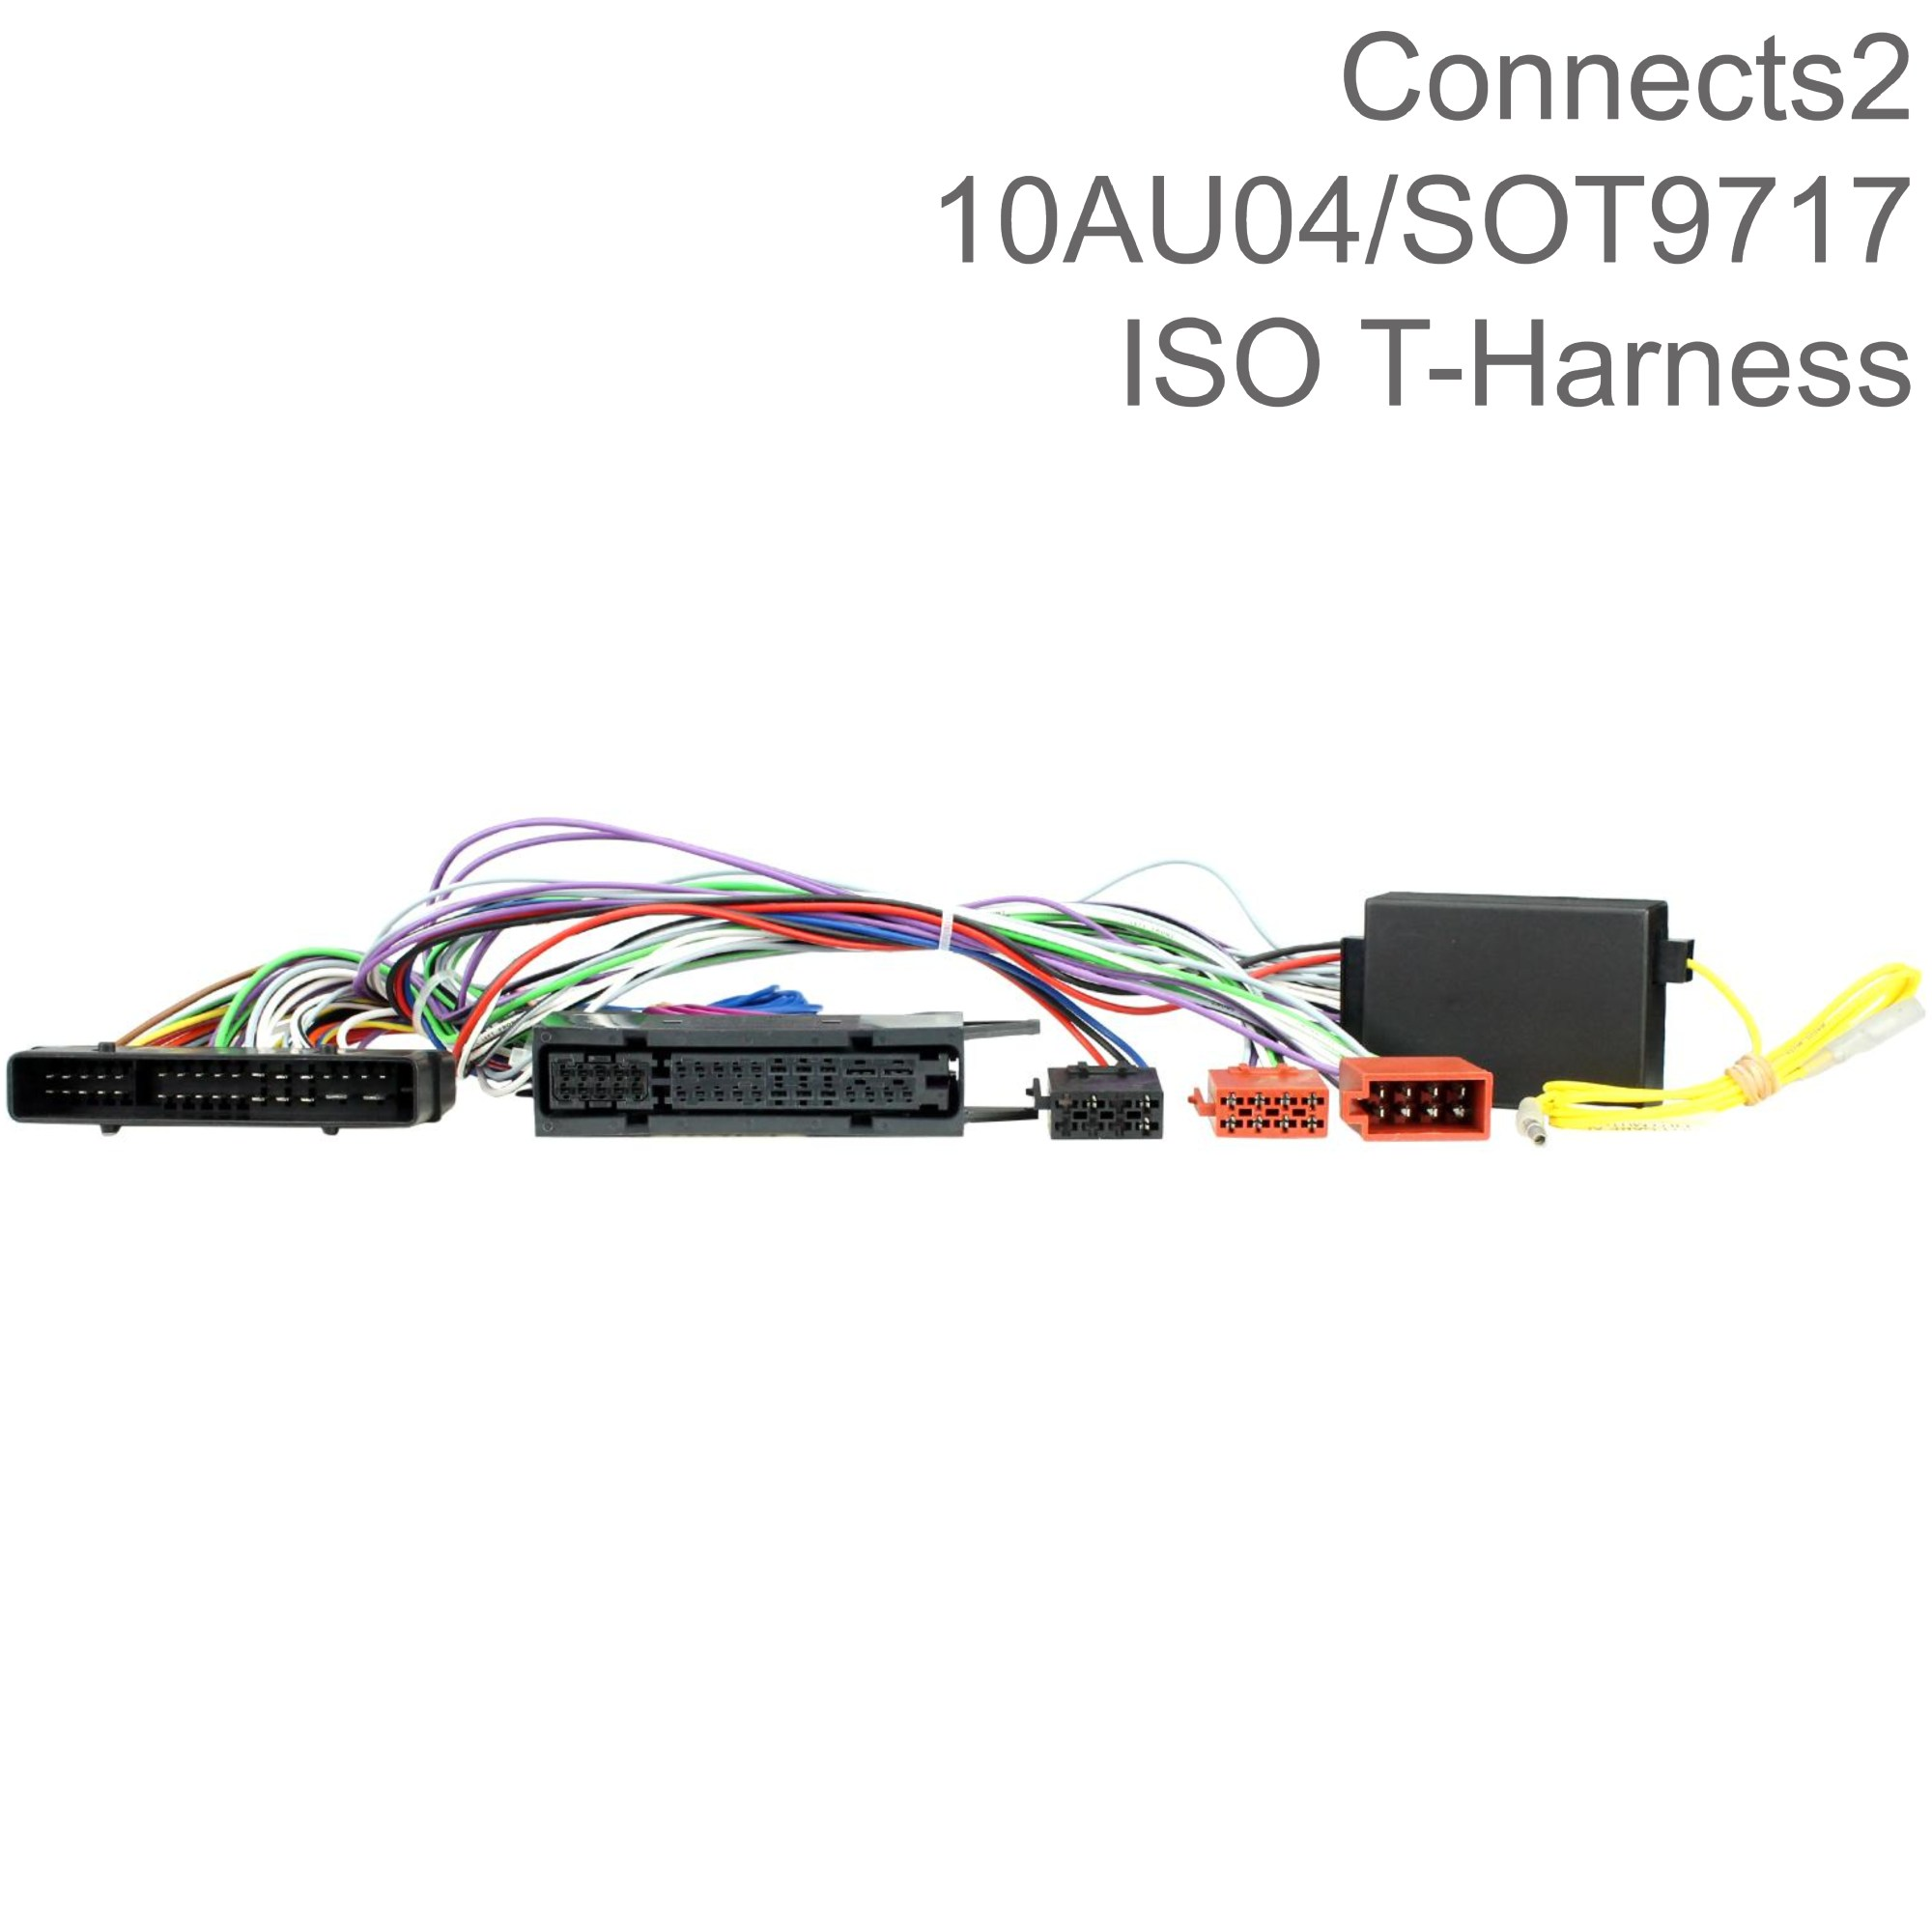 hight resolution of connects2 iso t harness wiring cable lead for audi a6 q7 car oem specific 10au04 sustuu